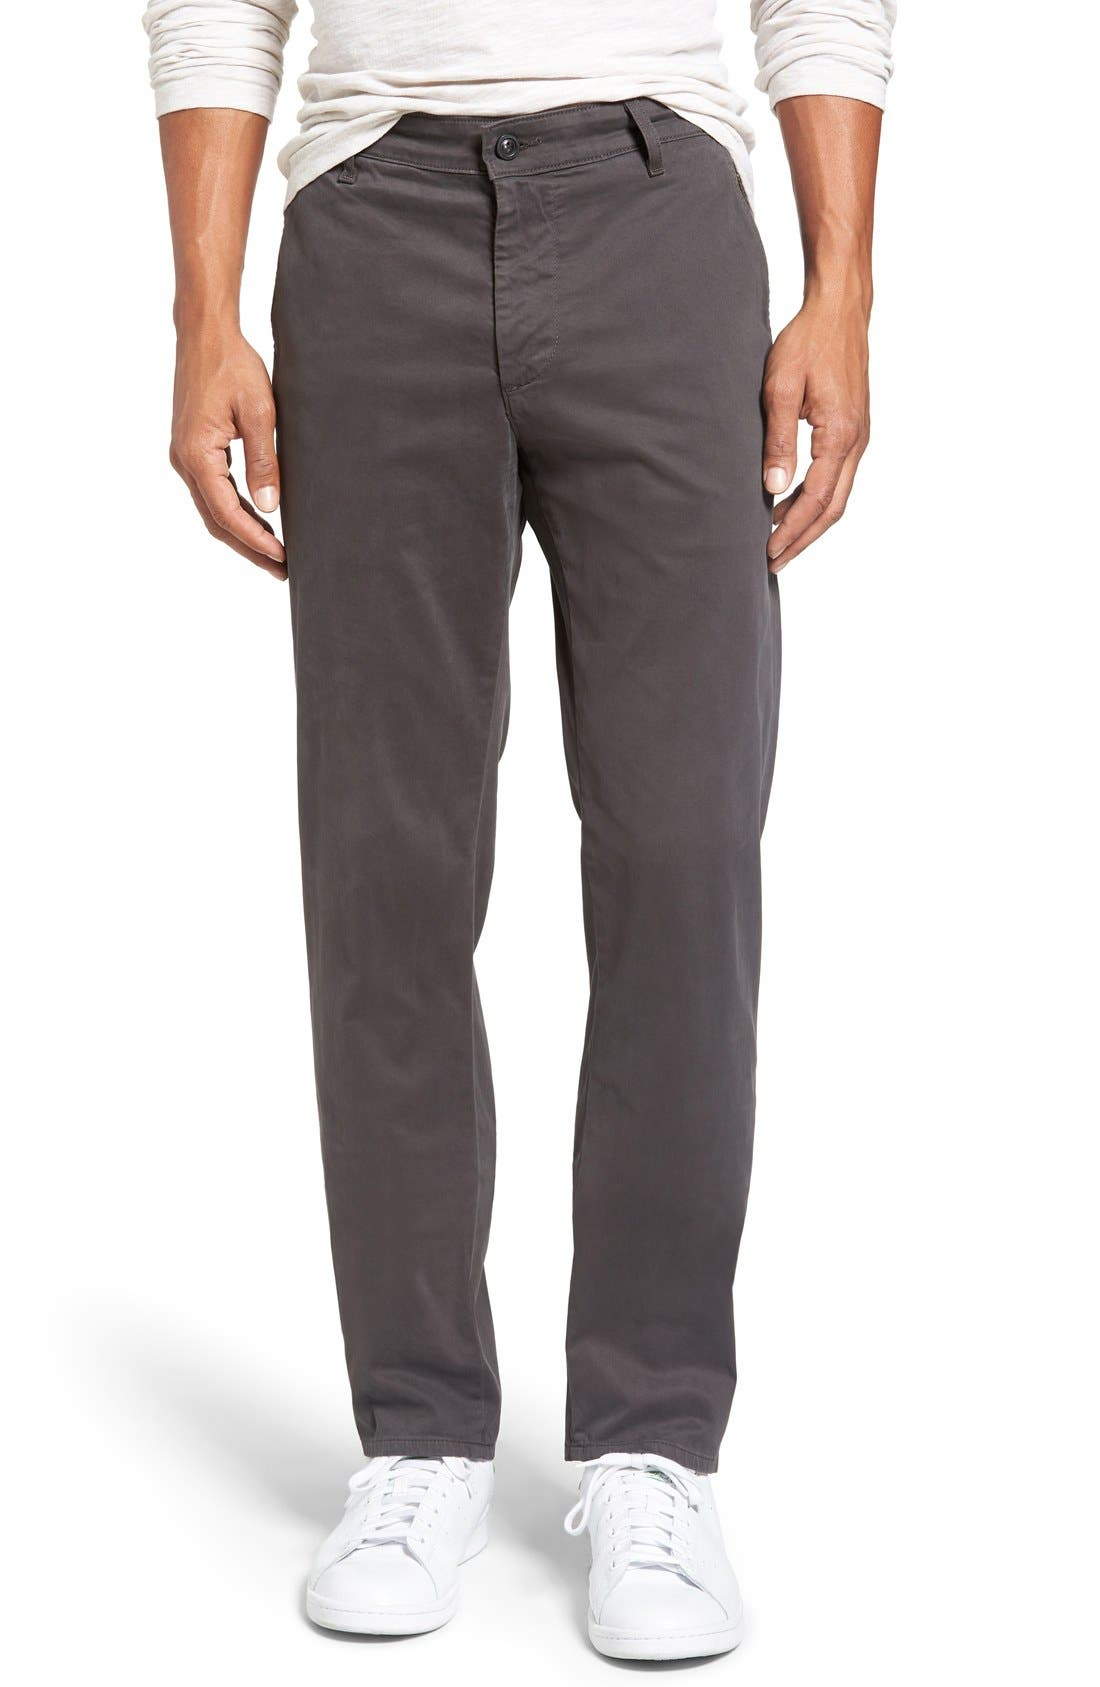 'The Lux' Tailored Straight Leg Chinos,                             Main thumbnail 6, color,